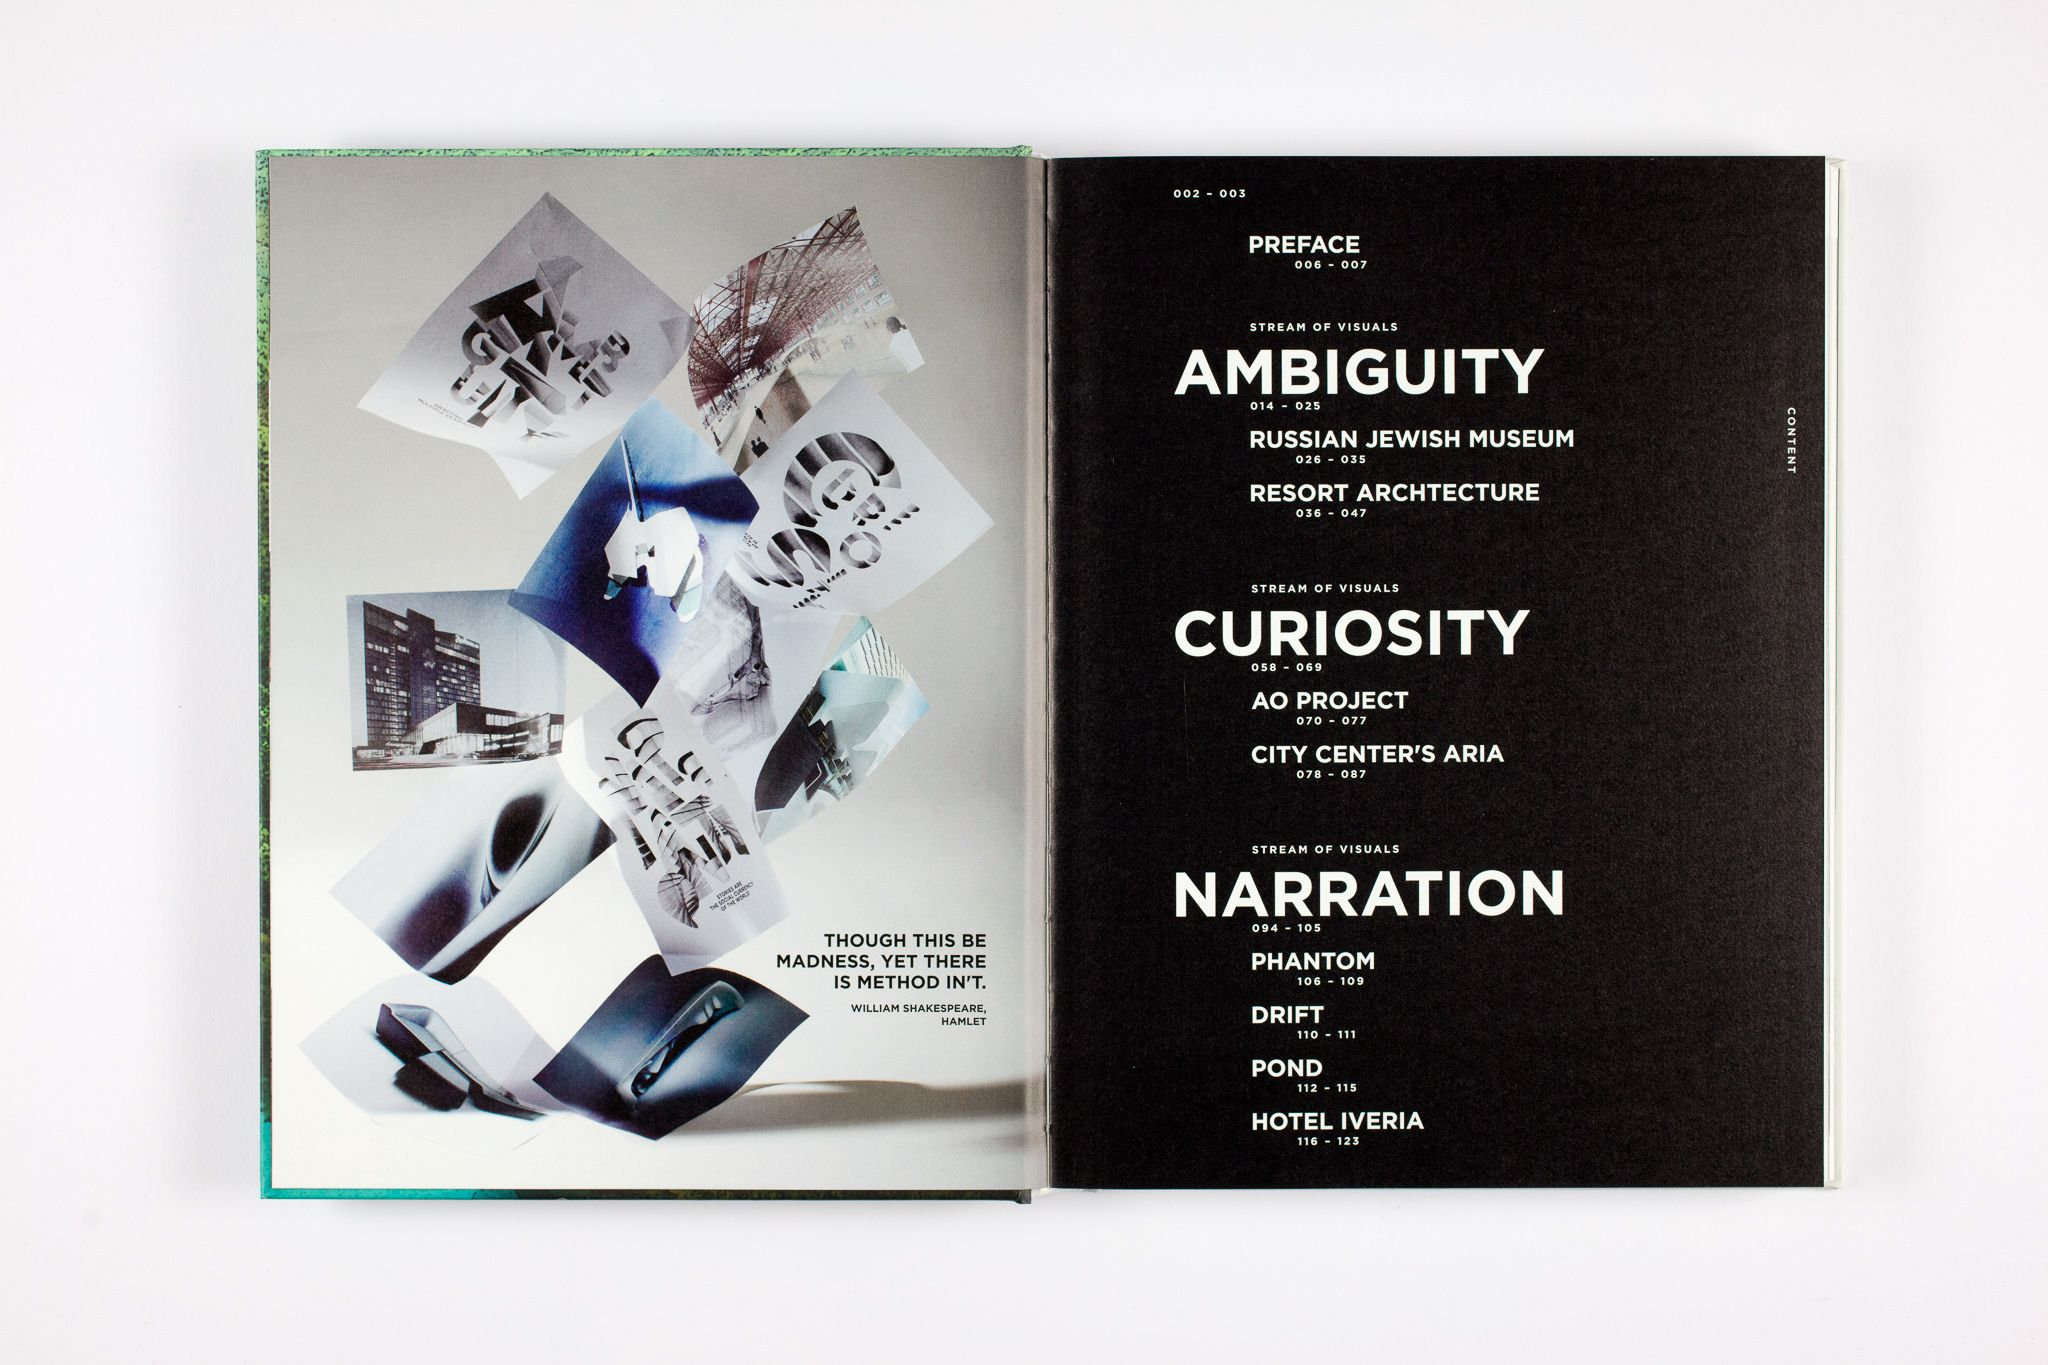 Insightful chapter introductions and project descriptions provide detailed documentation of the inspiration, context, and processes involved in creating some of the most visionary and relevant architecture and design of our time. Distinct Ambiguity features a foreword by director of Haus am Waldsee Dr. Katja Blomberg.